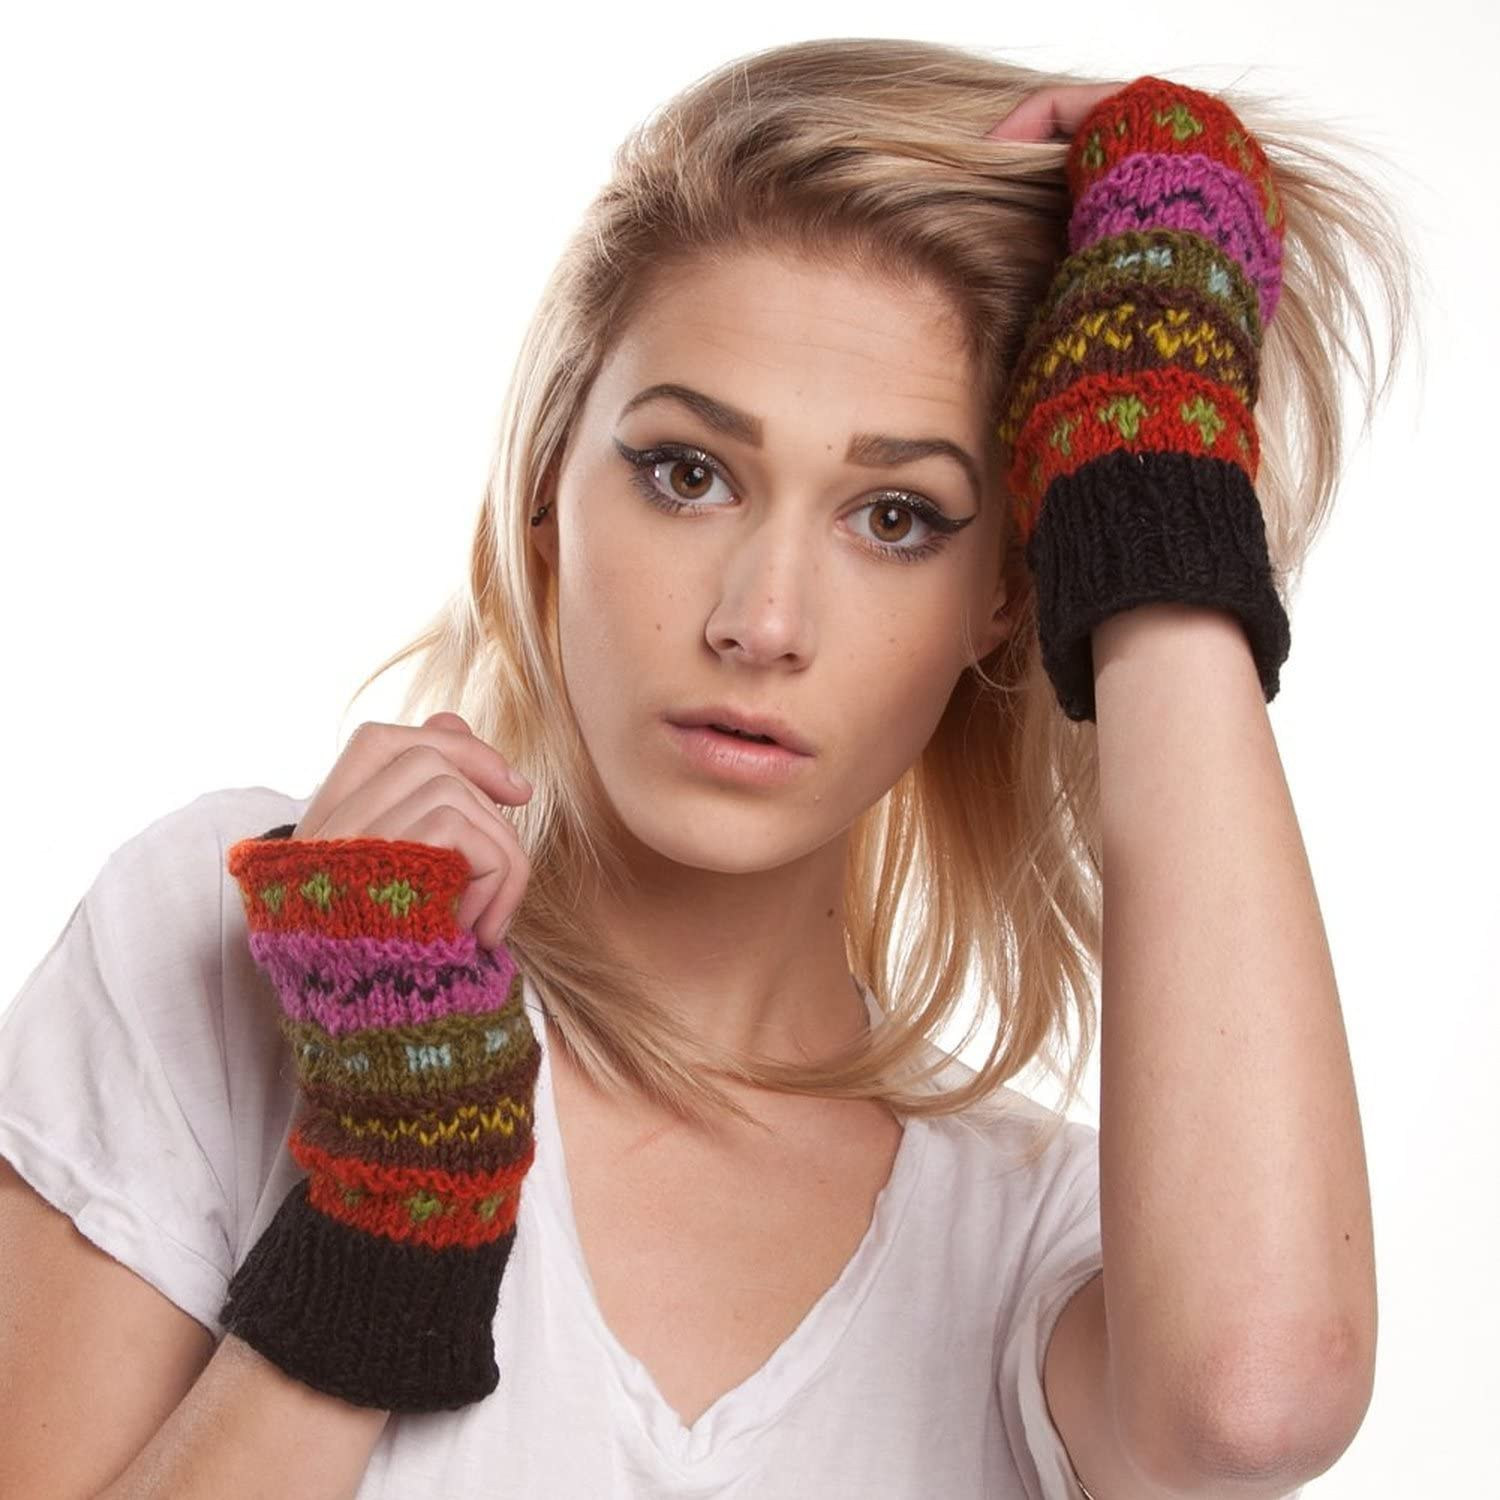 Multi knt gloves Ranking integrated 1st place New arrival fingerless